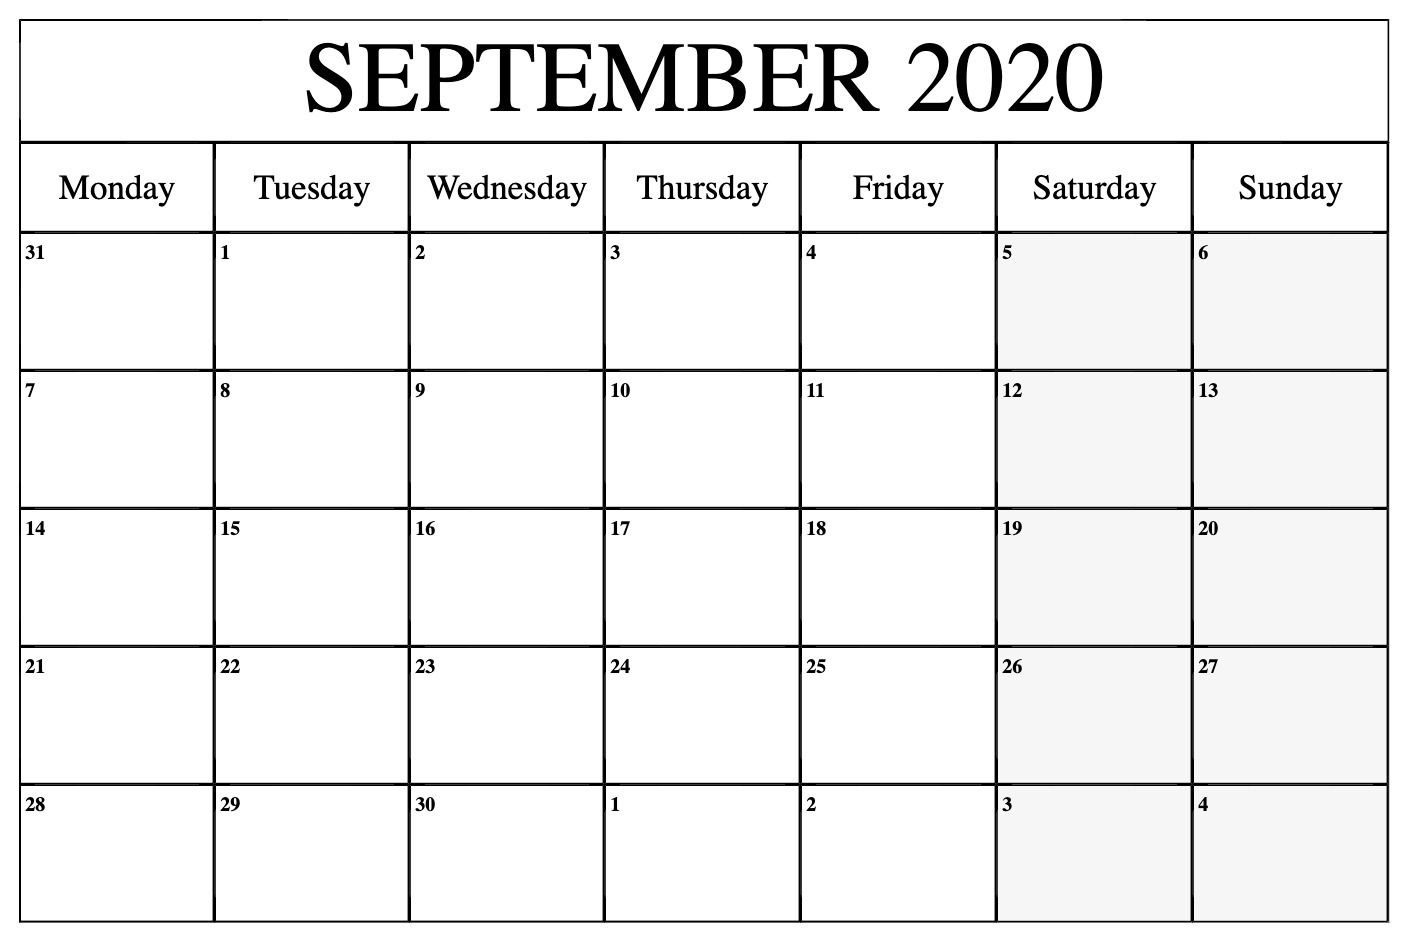 September 2020 Calendar Printable Template In Pdf Word Excel